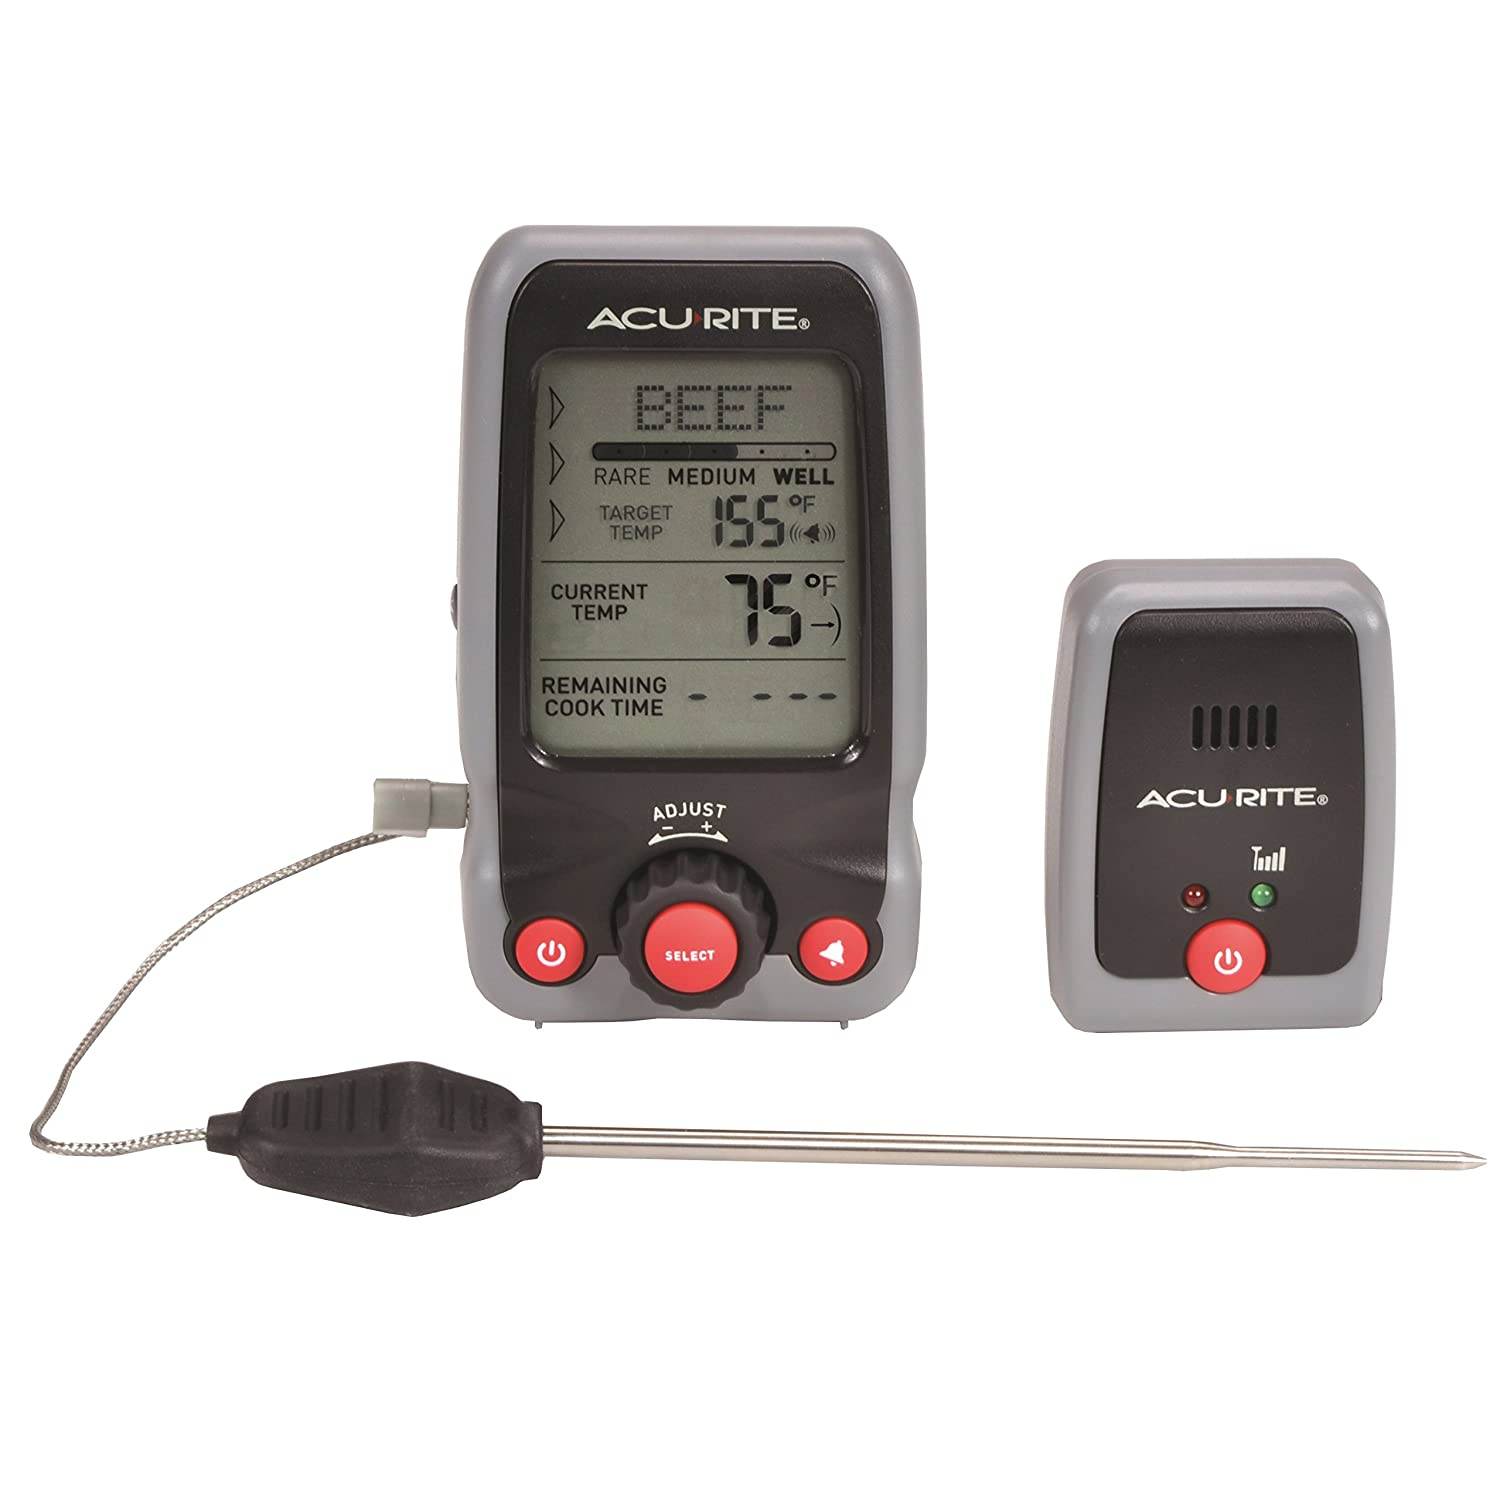 AcuRite Digital Meat Thermometer and Timer with Pager Chaney Instruments 00278